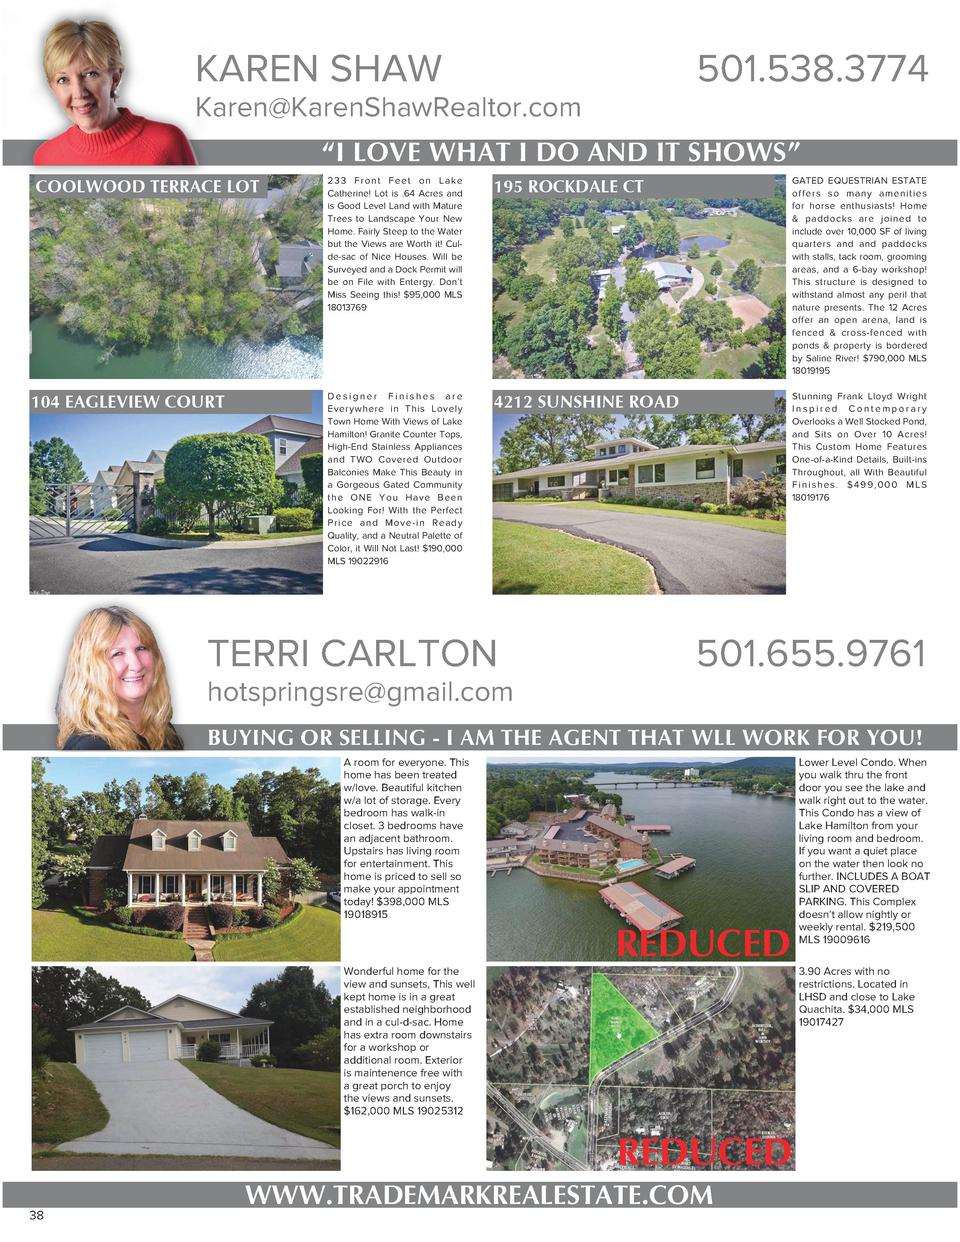 KAREN SHAW  501.538.3774  Karen KarenShawRealtor.com     I LOVE WHAT I DO AND IT SHOWS    COOLWOOD TERRACE LOT  104 EAGLEV...